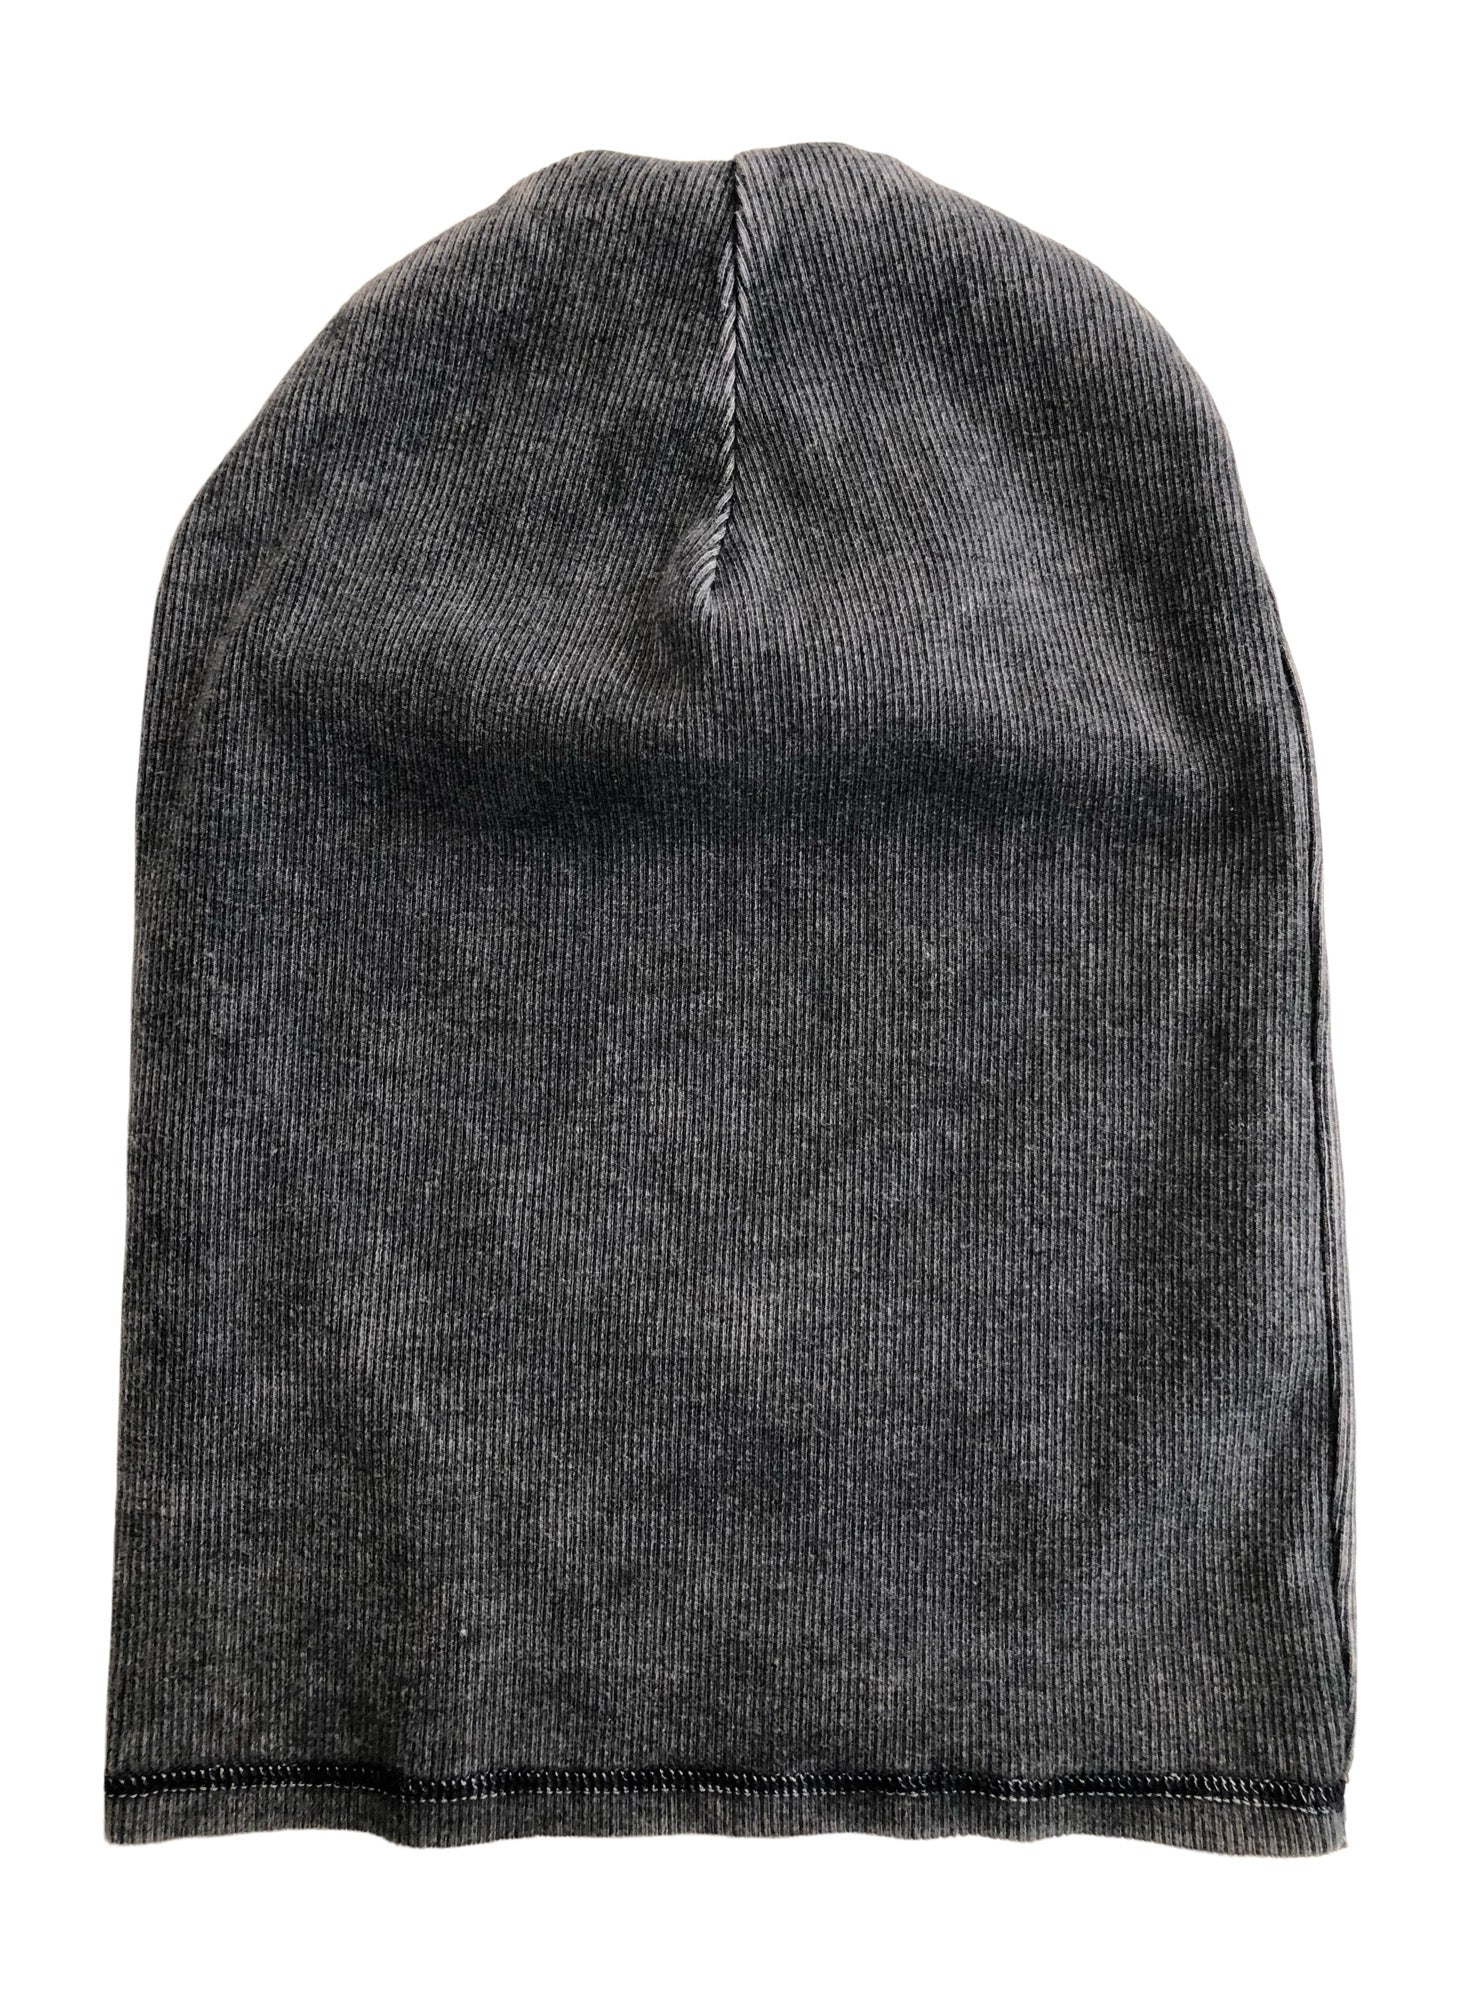 Adult Unisex Slouchy Beanie Hat Black Mineral Wash